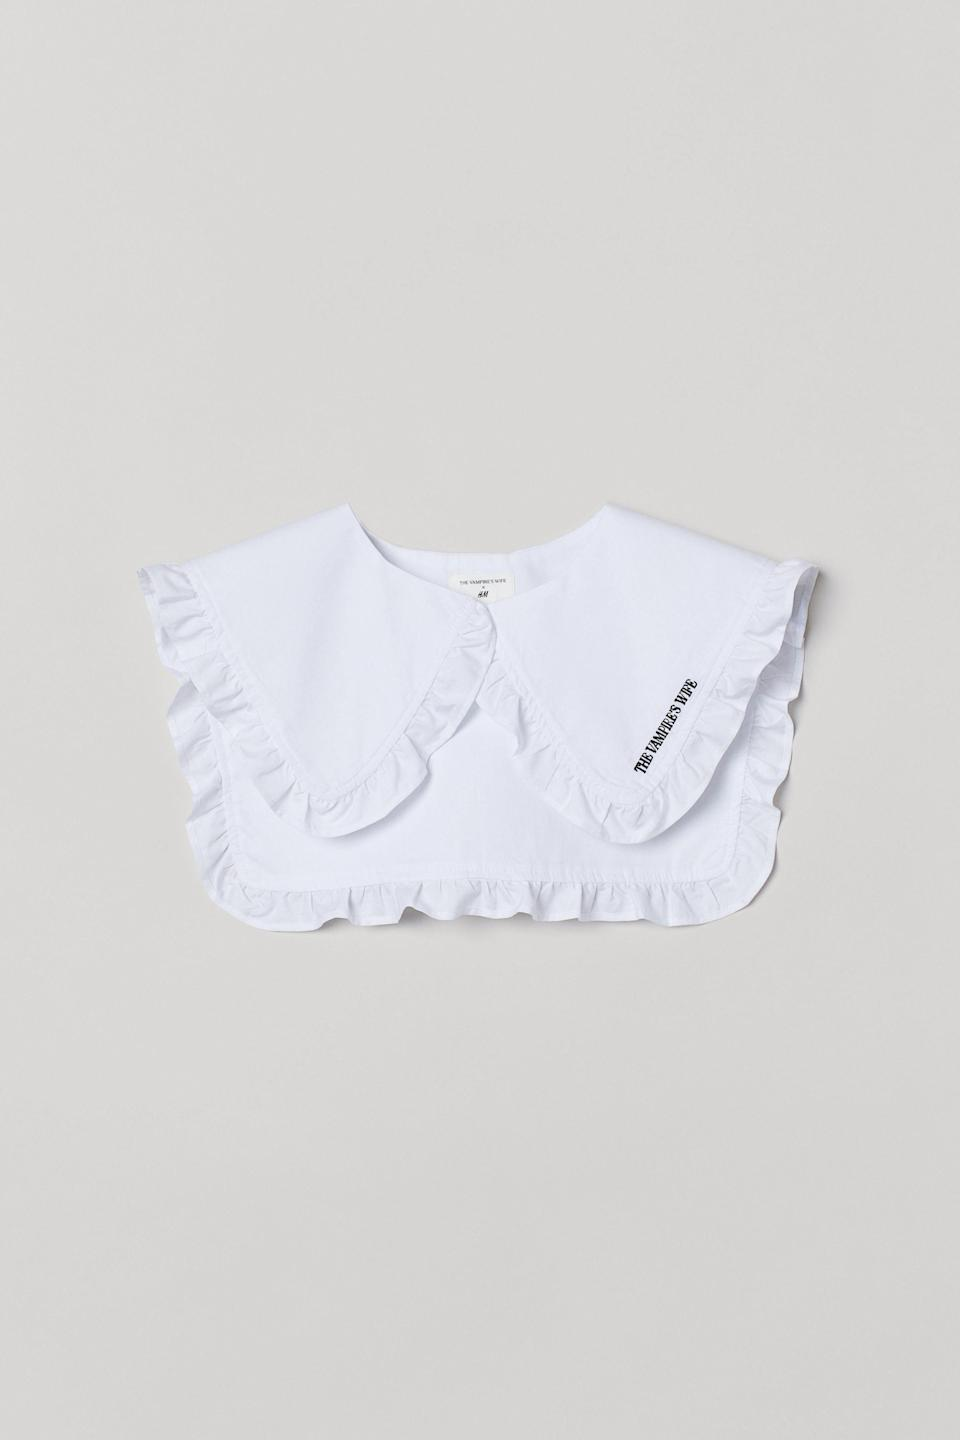 """<p><strong>H&M</strong></p><p>hm.com</p><p><strong>$12.99</strong></p><p><a href=""""https://go.redirectingat.com?id=74968X1596630&url=https%3A%2F%2Fwww2.hm.com%2Fen_us%2Fproductpage.0951755001.html&sref=https%3A%2F%2Fwww.townandcountrymag.com%2Fstyle%2Ffashion-trends%2Fg34431012%2Fthe-vampires-wife-hm-collaboration%2F"""" rel=""""nofollow noopener"""" target=""""_blank"""" data-ylk=""""slk:Shop Now"""" class=""""link rapid-noclick-resp"""">Shop Now</a></p>"""